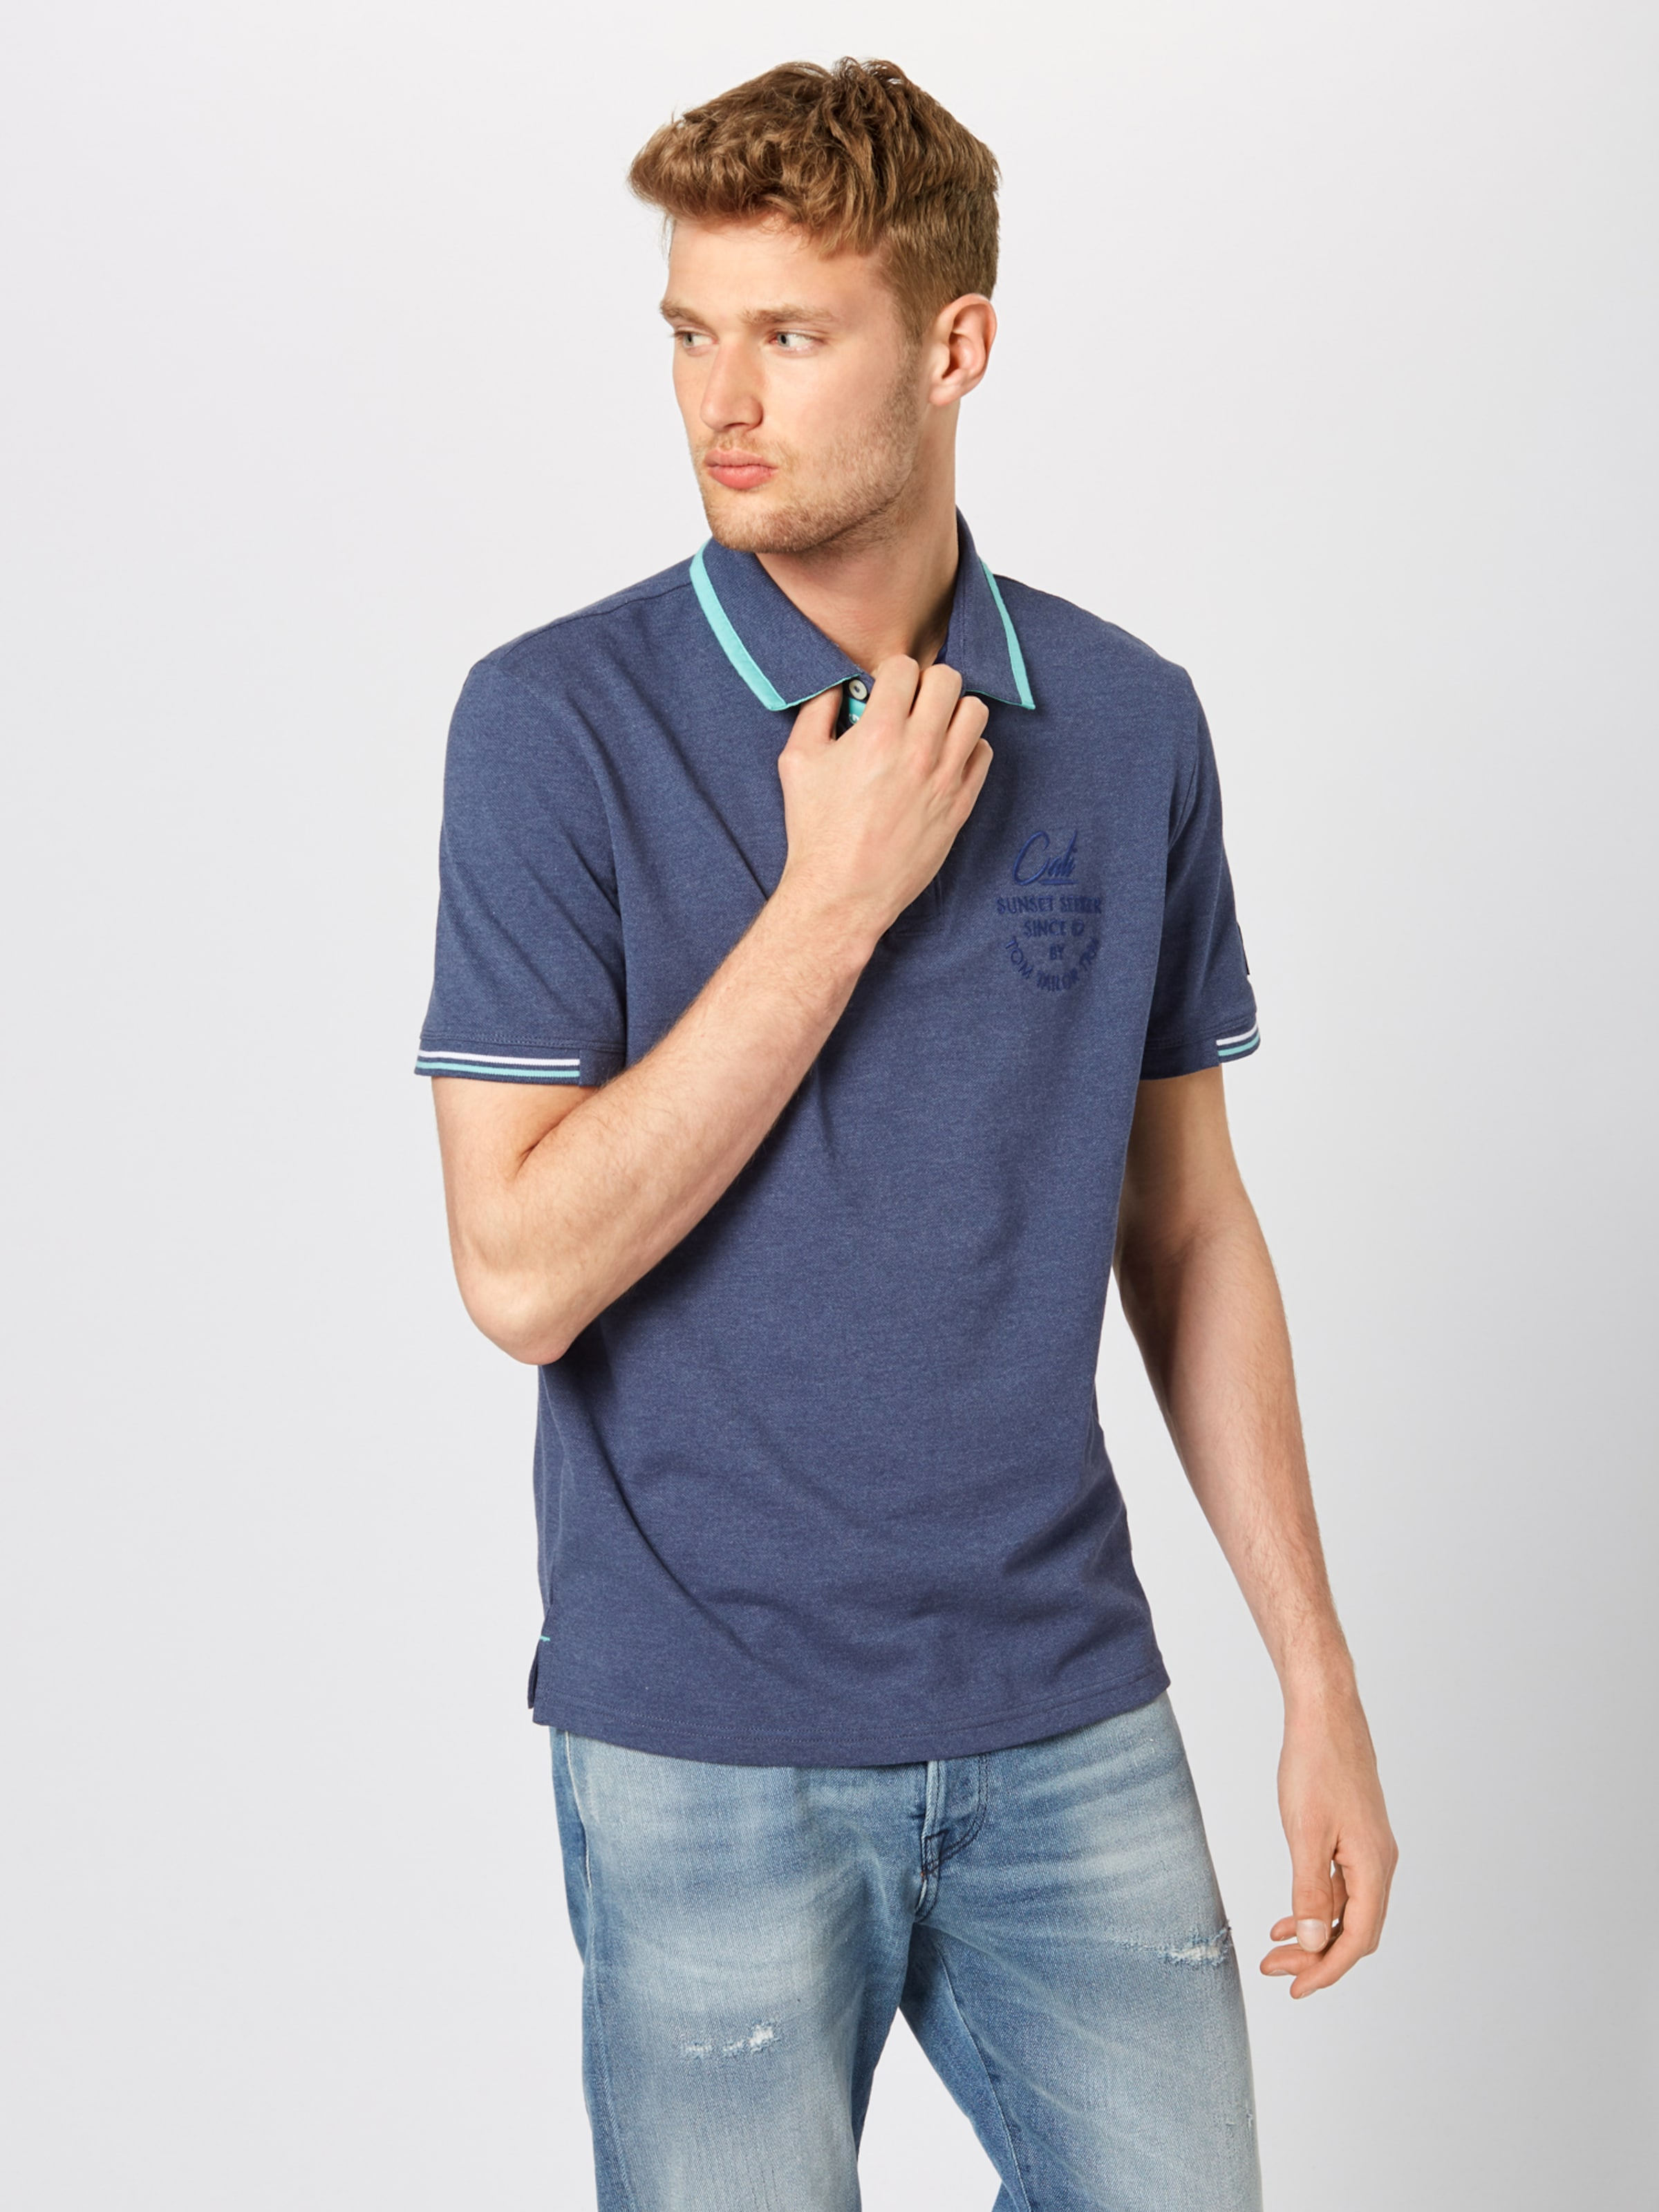 In Poloshirt Tailor Tom Tom Poloshirt Dunkelblau Tailor Dunkelblau In Tailor Tom rhCxtQsd